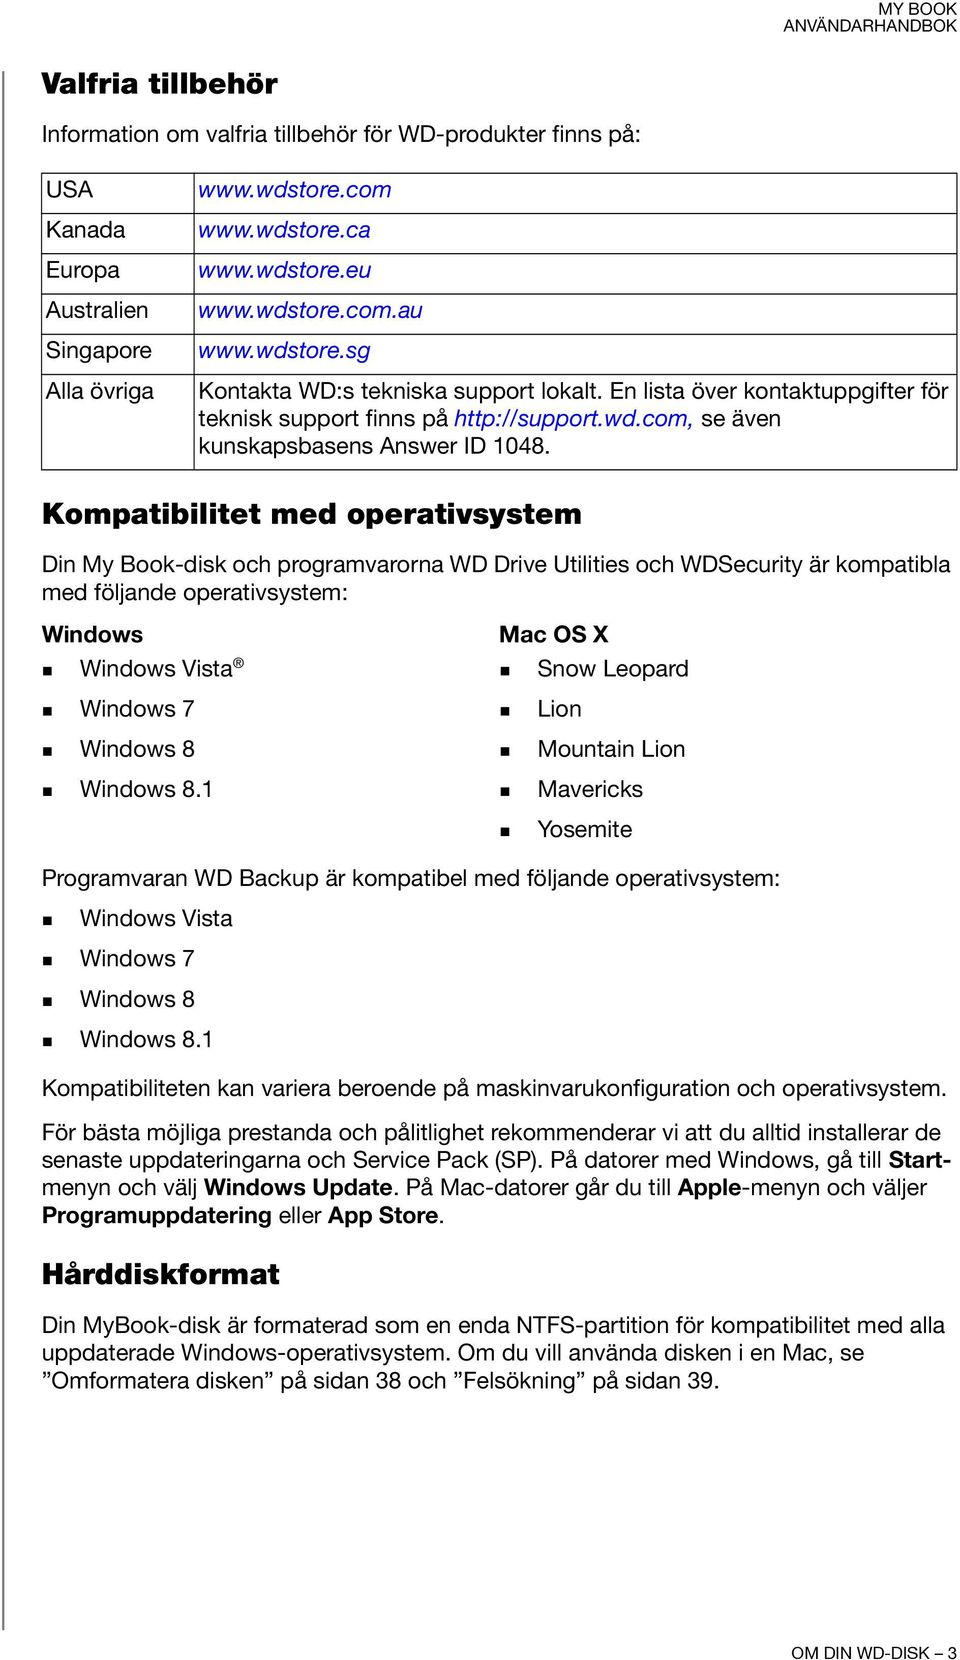 Kompatibilitet med operativsystem Din My Book-disk och programvarorna WD Drive Utilities och WDSecurity är kompatibla med följande operativsystem: Windows Windows Vista Mac OS X Snow Leopard Windows